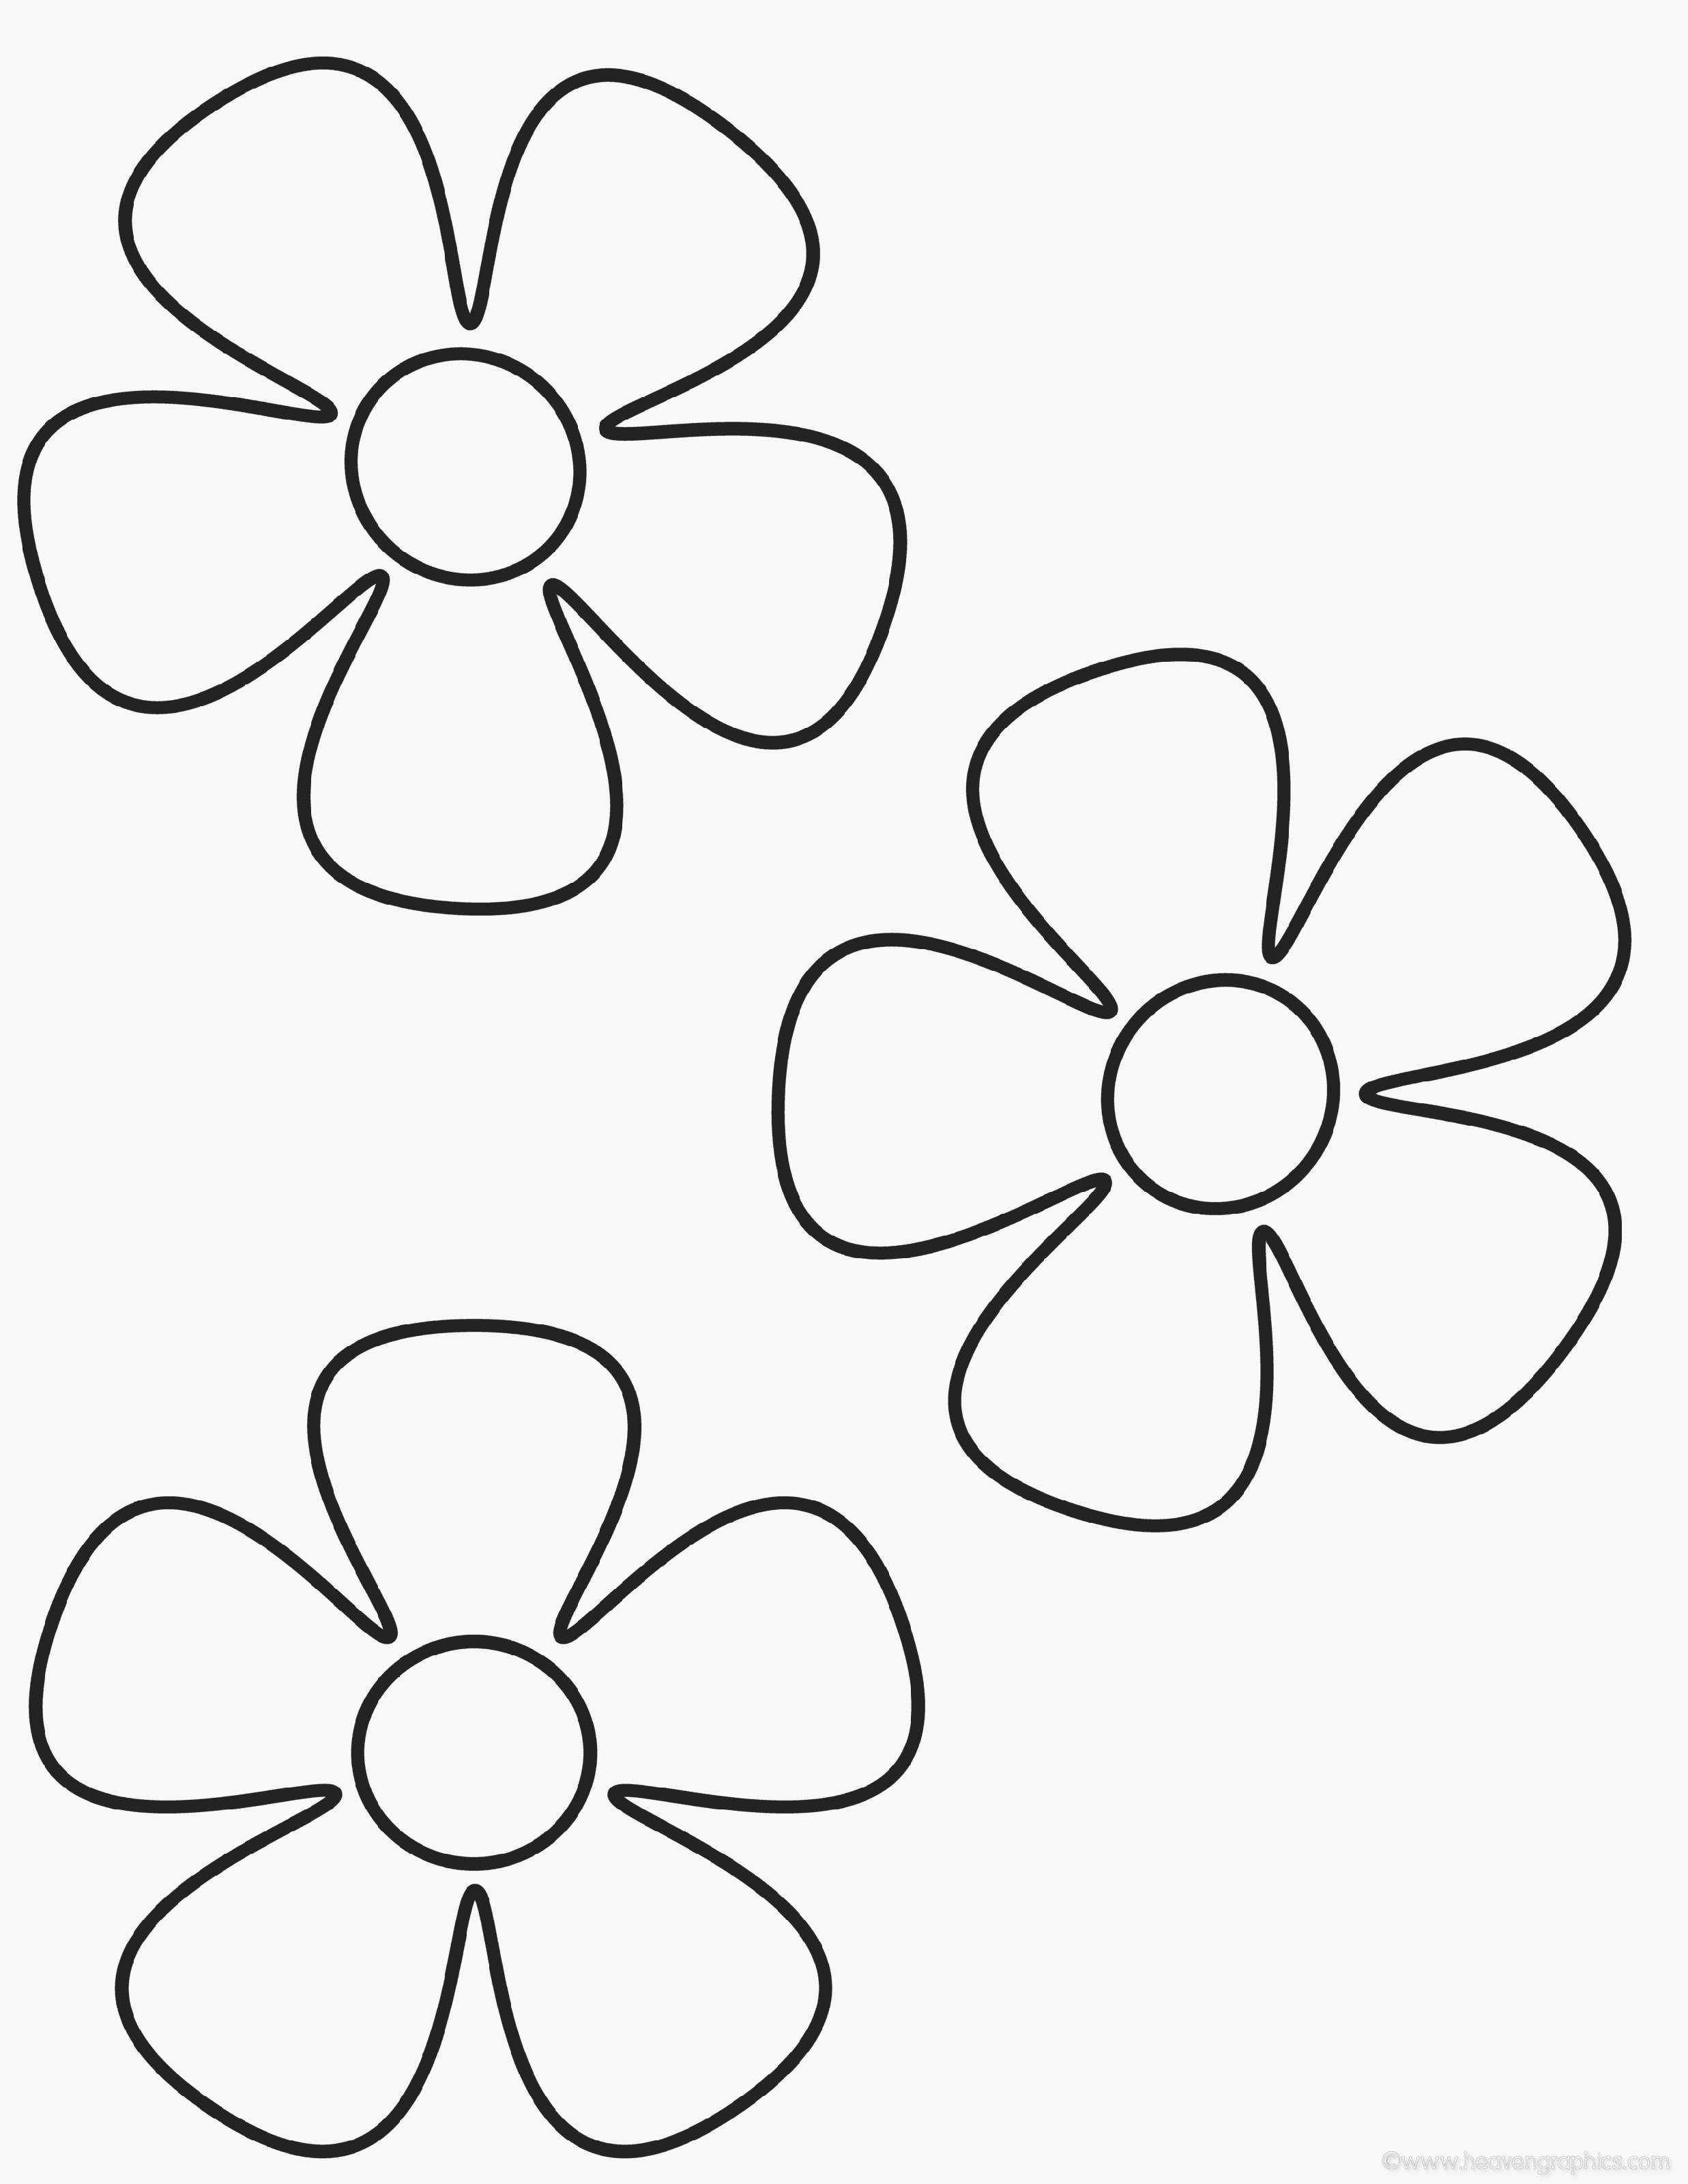 Daisy Flower Coloring Page Free Printable - Sea4Waterman ...